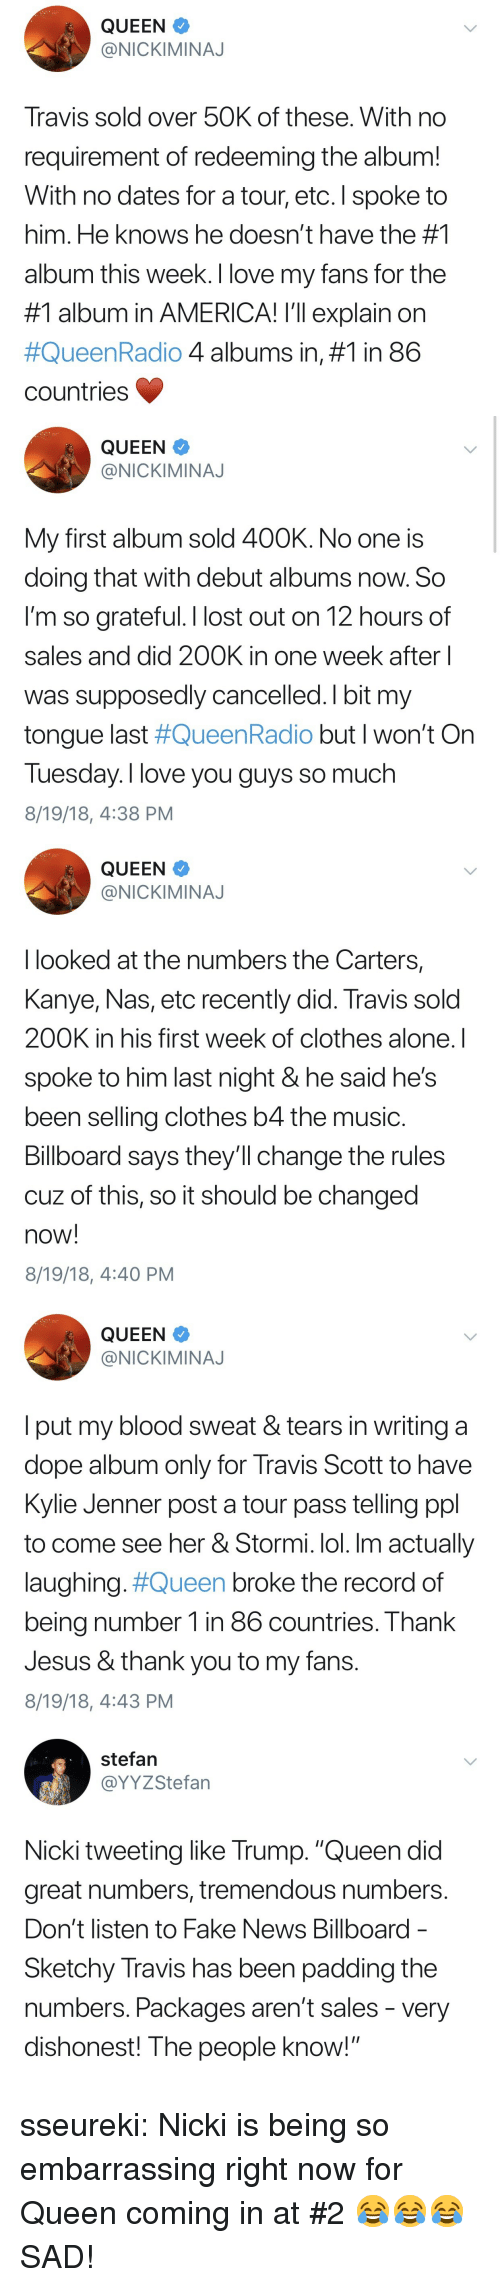 """nickiminaj: QUEEN  @NICKIMINAJ  Travis sold over 50K of these. With no  requirement of redeeming the album!  With no dates for a tour, etc. I spoke to  him. He knows he doesn't have the #1  album this week. I love my fans for the  #1 album in AMERICA! I'll explain on  #QueenRadio 4 albums in, #1 in 86  countries   QUEEN  @NICKIMINAJ  My first album sold 400K. No one is  doing that with debut albums now. So  l'm so grateful. I lost out on 12 hours of  sales and did 200K in one week after  was supposedly cancelled. I bit my  tongue last #QueenRadio but I won't On  Tuesday. I love you guys so much  8/19/18, 4:38 PM   QUEEN  @NICKIMINAJ  I looked at the numbers the Carters,  Kanye, Nas, etc recently did. Travis sold  200K in his first week of clothes alone. I  spoke to him last night & he said he's  been selling clothes b4 the music  Billboard says they'll change the rules  cuz of this, so it should be changed  now!  8/19/18, 4:40 PM   QUEEN  @NICKIMINAJ  l put my blood sweat & tears in writing a  dope album only for Travis Scott to have  Kylie Jenner post a tour pass telling ppl  to come see her & Stormi. lol. Im actually  laughing#Queen broke the record of  being number 1 in 86 countries. Thank  Jesus & thank you to my fans.  8/19/18, 4:43 PM   stefan  @YYZStefan  Nicki tweeting like Trump. """"Queen did  great numbers, tremendous numbers  Don't listen to Fake News Billboard  Sketchy Travis has been padding the  numbers. Packages aren't sales - very  dishonest! The people know! sseureki:  Nicki is being so embarrassing right now for Queen coming in at #2 😂😂😂  SAD!"""